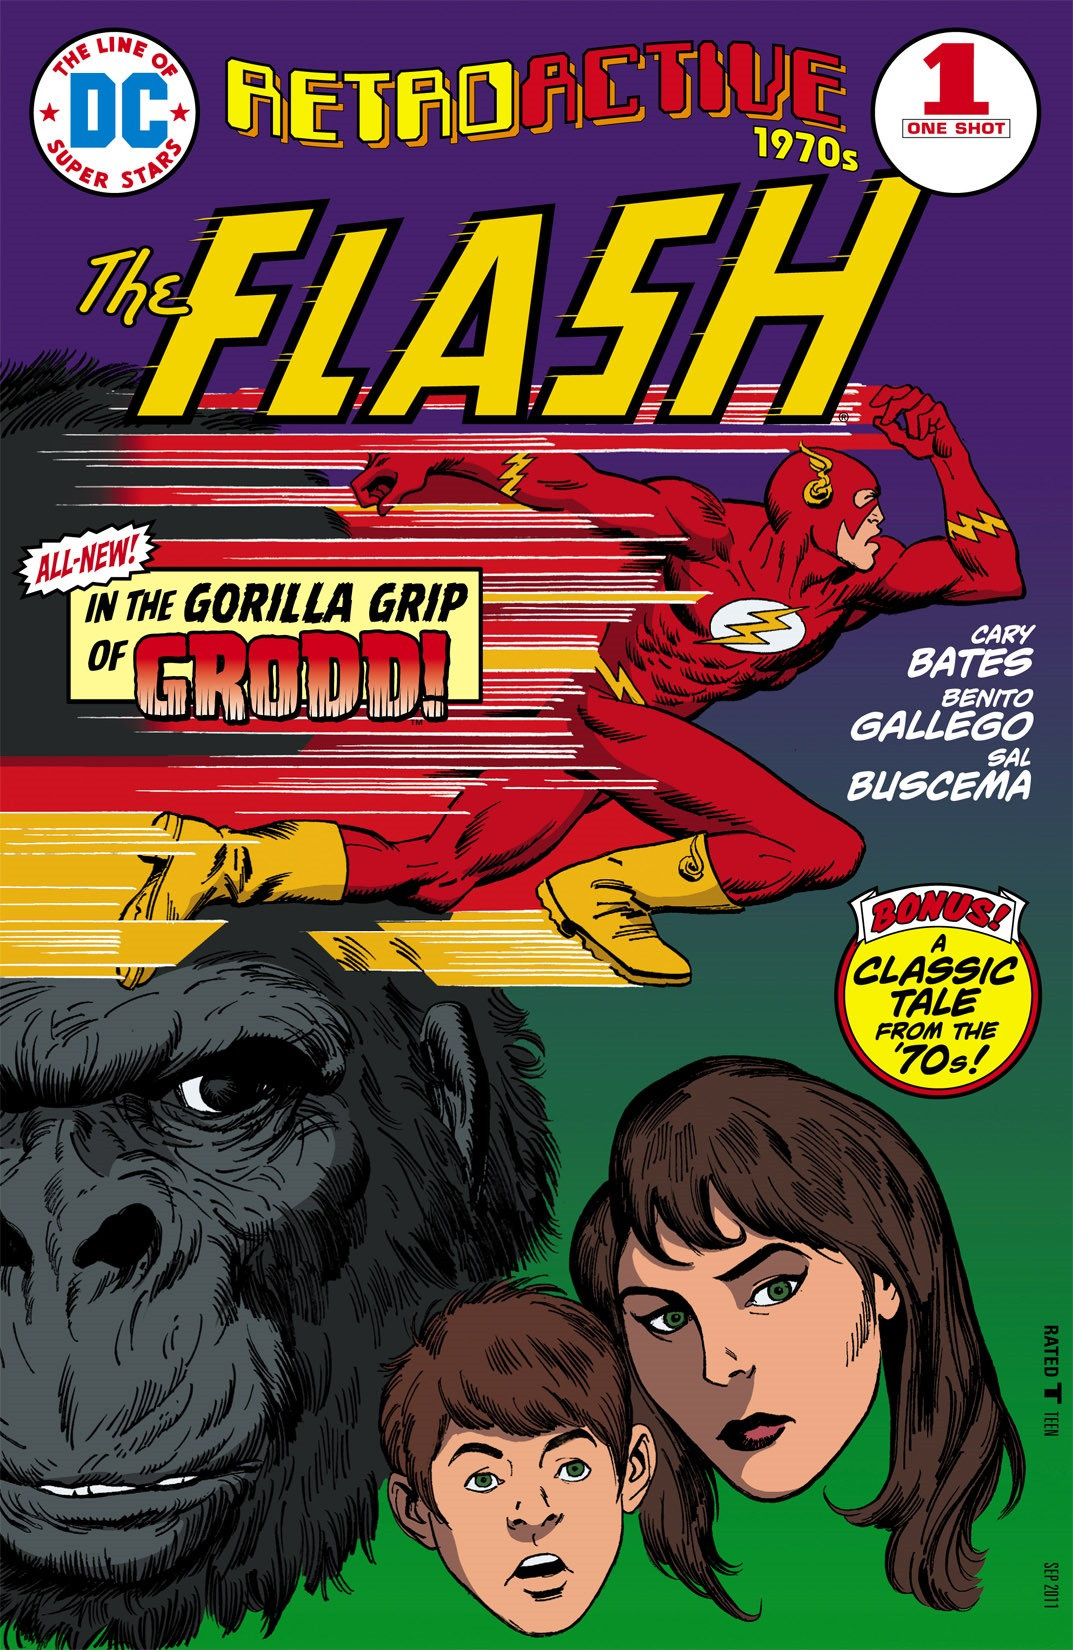 DC Retroactive Flash The '70s (2011) #1, cover penciled by Benito Gallego & inked by Sal Buscema.